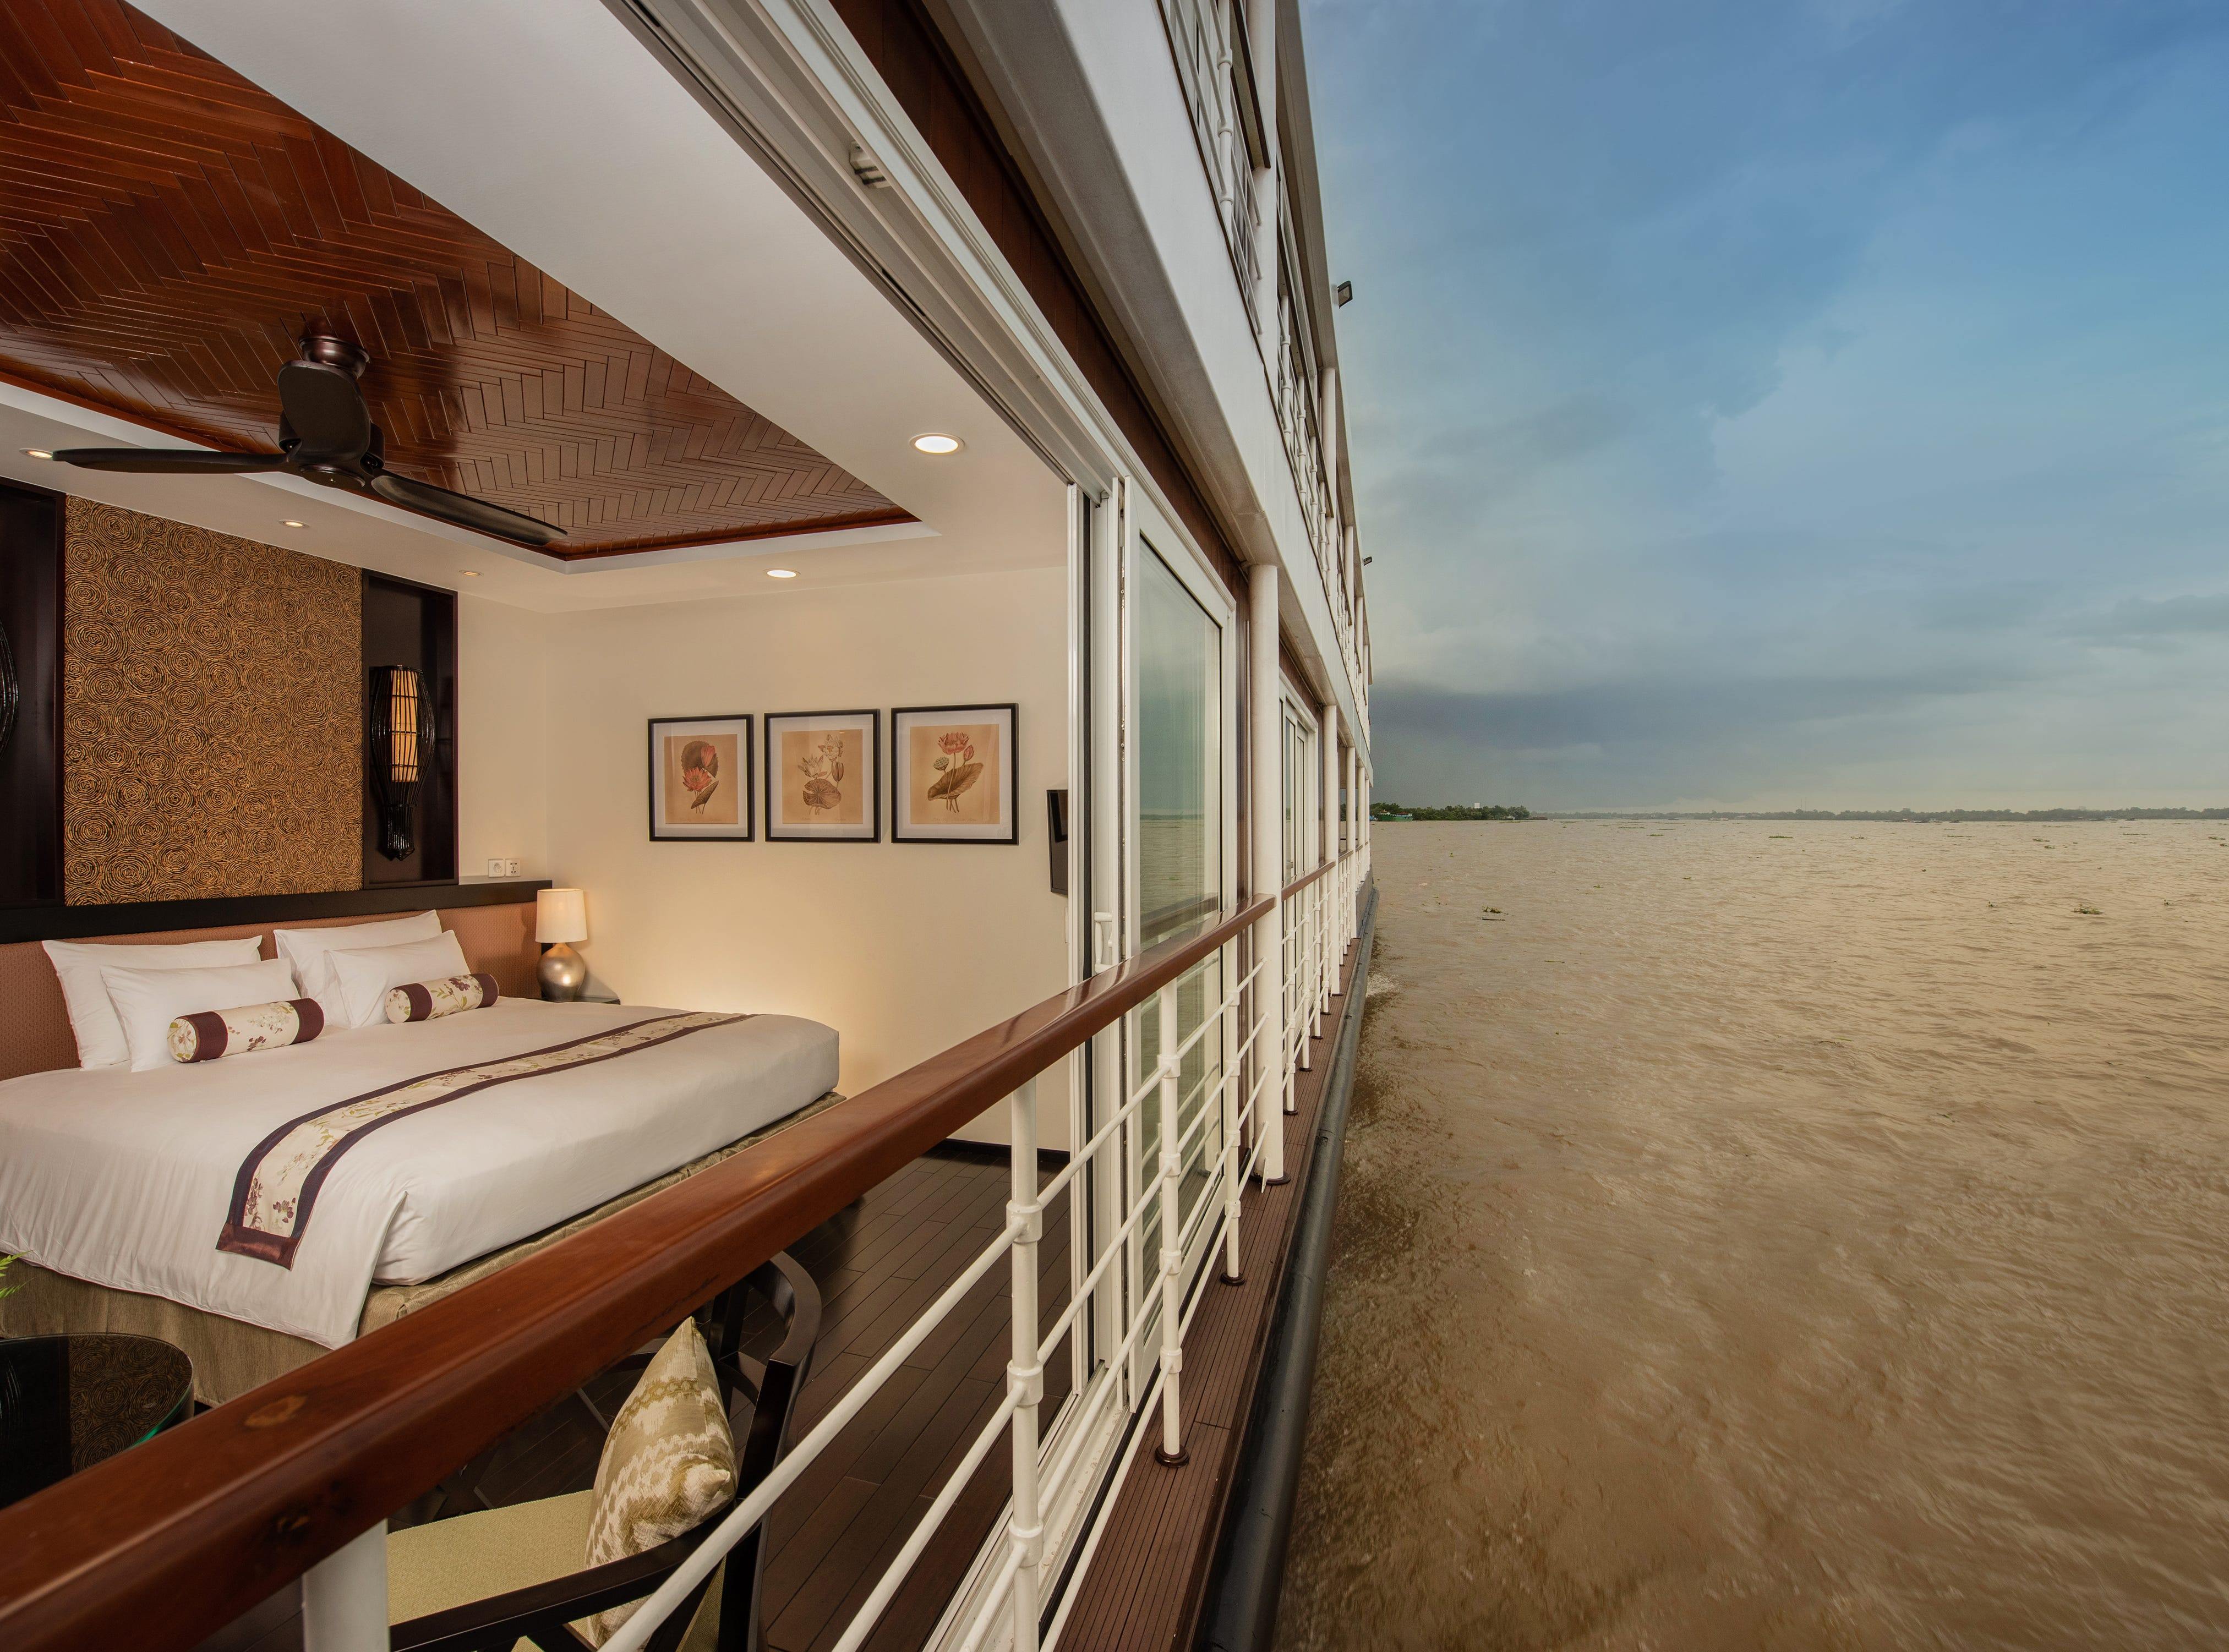 With the glass walls open, Avalon Saigon suites open up to the Mekong River like no other ship cabins on the waterway.